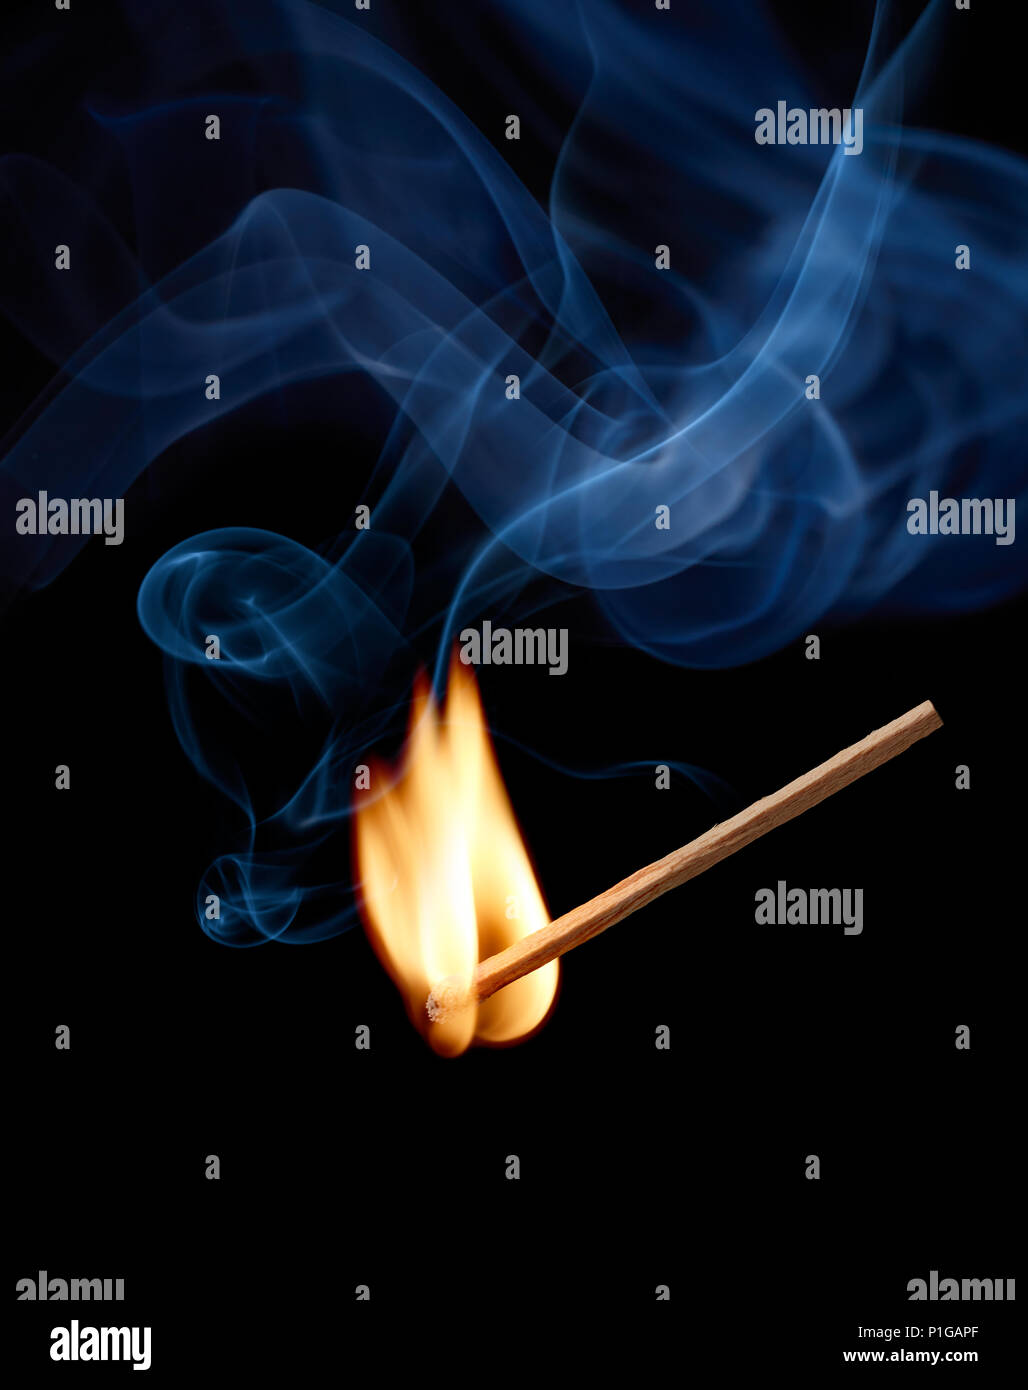 matchstick with flame and smoke at the moment of ignition - Stock Image